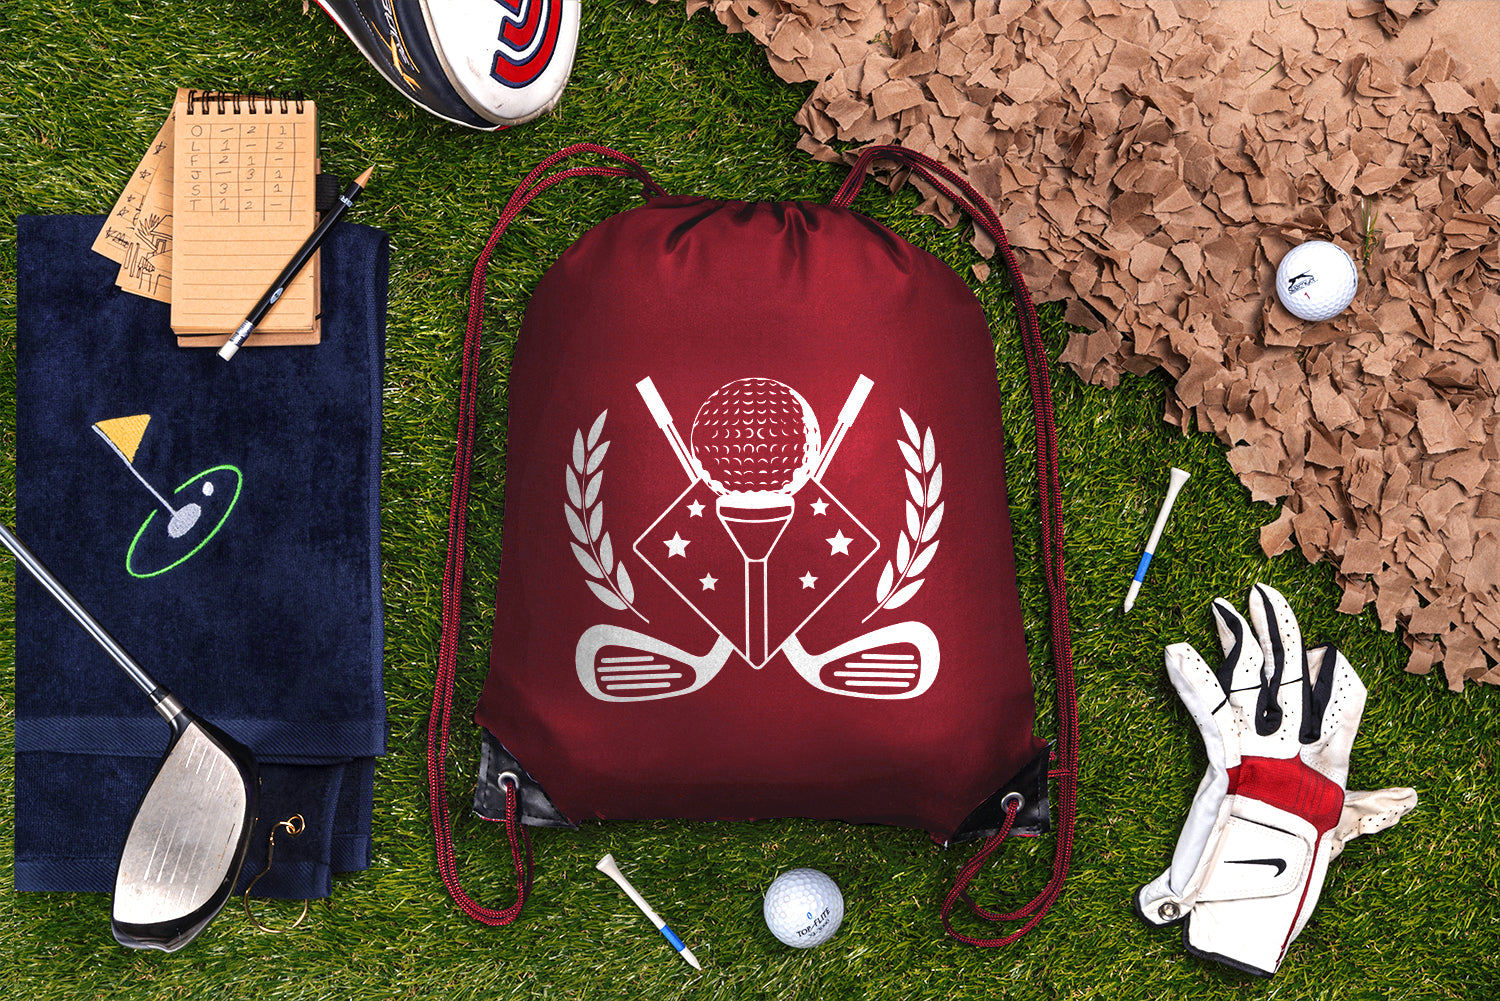 Teed Up With Crossed Clubs and Stars Polyester Drawstring Bag